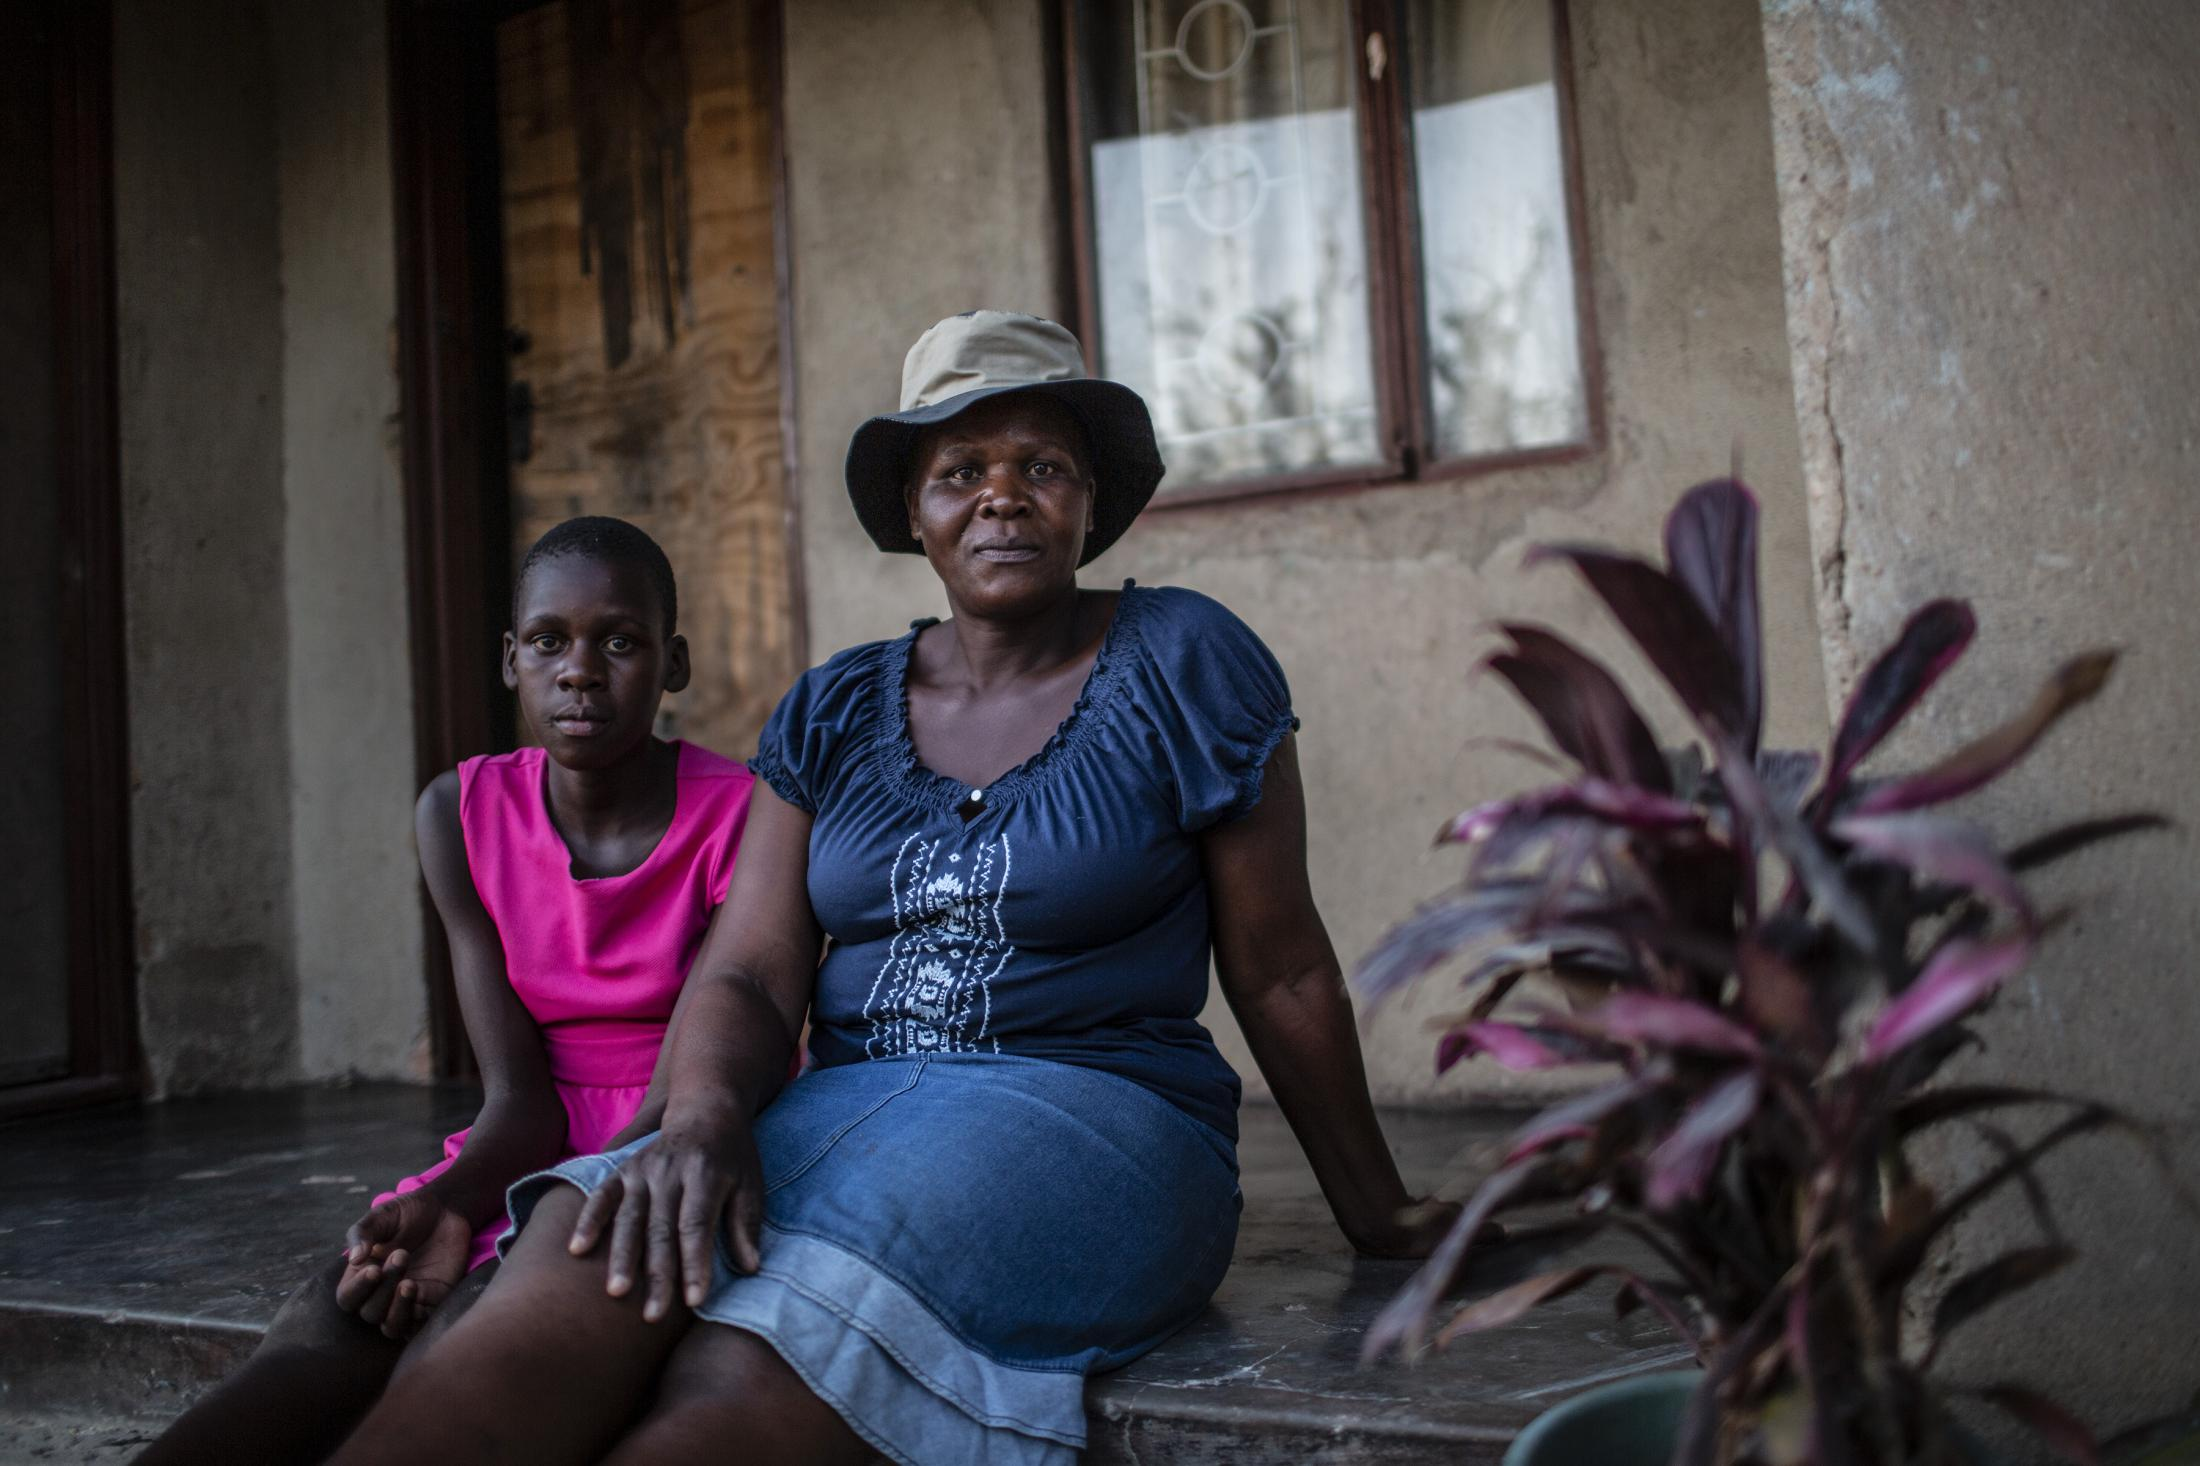 Tariro Chinamo (43) (R) and her daughter Lana Fariva (14) are pictured at their home which is 7kms away from the R4 Rural Resilience Project in Masvingo, Zimbabwe on October 07, 2019. The family has no electricity or water at home and have to walk for over a km to a spring to fetch water everyday. They have no choice but to use this for drinking and cooking as well, so it will be boiled. The project has benefitted them greatly, providing fresh fish and vegetables for the family. Tariro has also gained a lot of knowledge about farming and financial literacy and is able to implement these strategies in other aspects of her life. She has now started her own poultry and goat farming initiative.